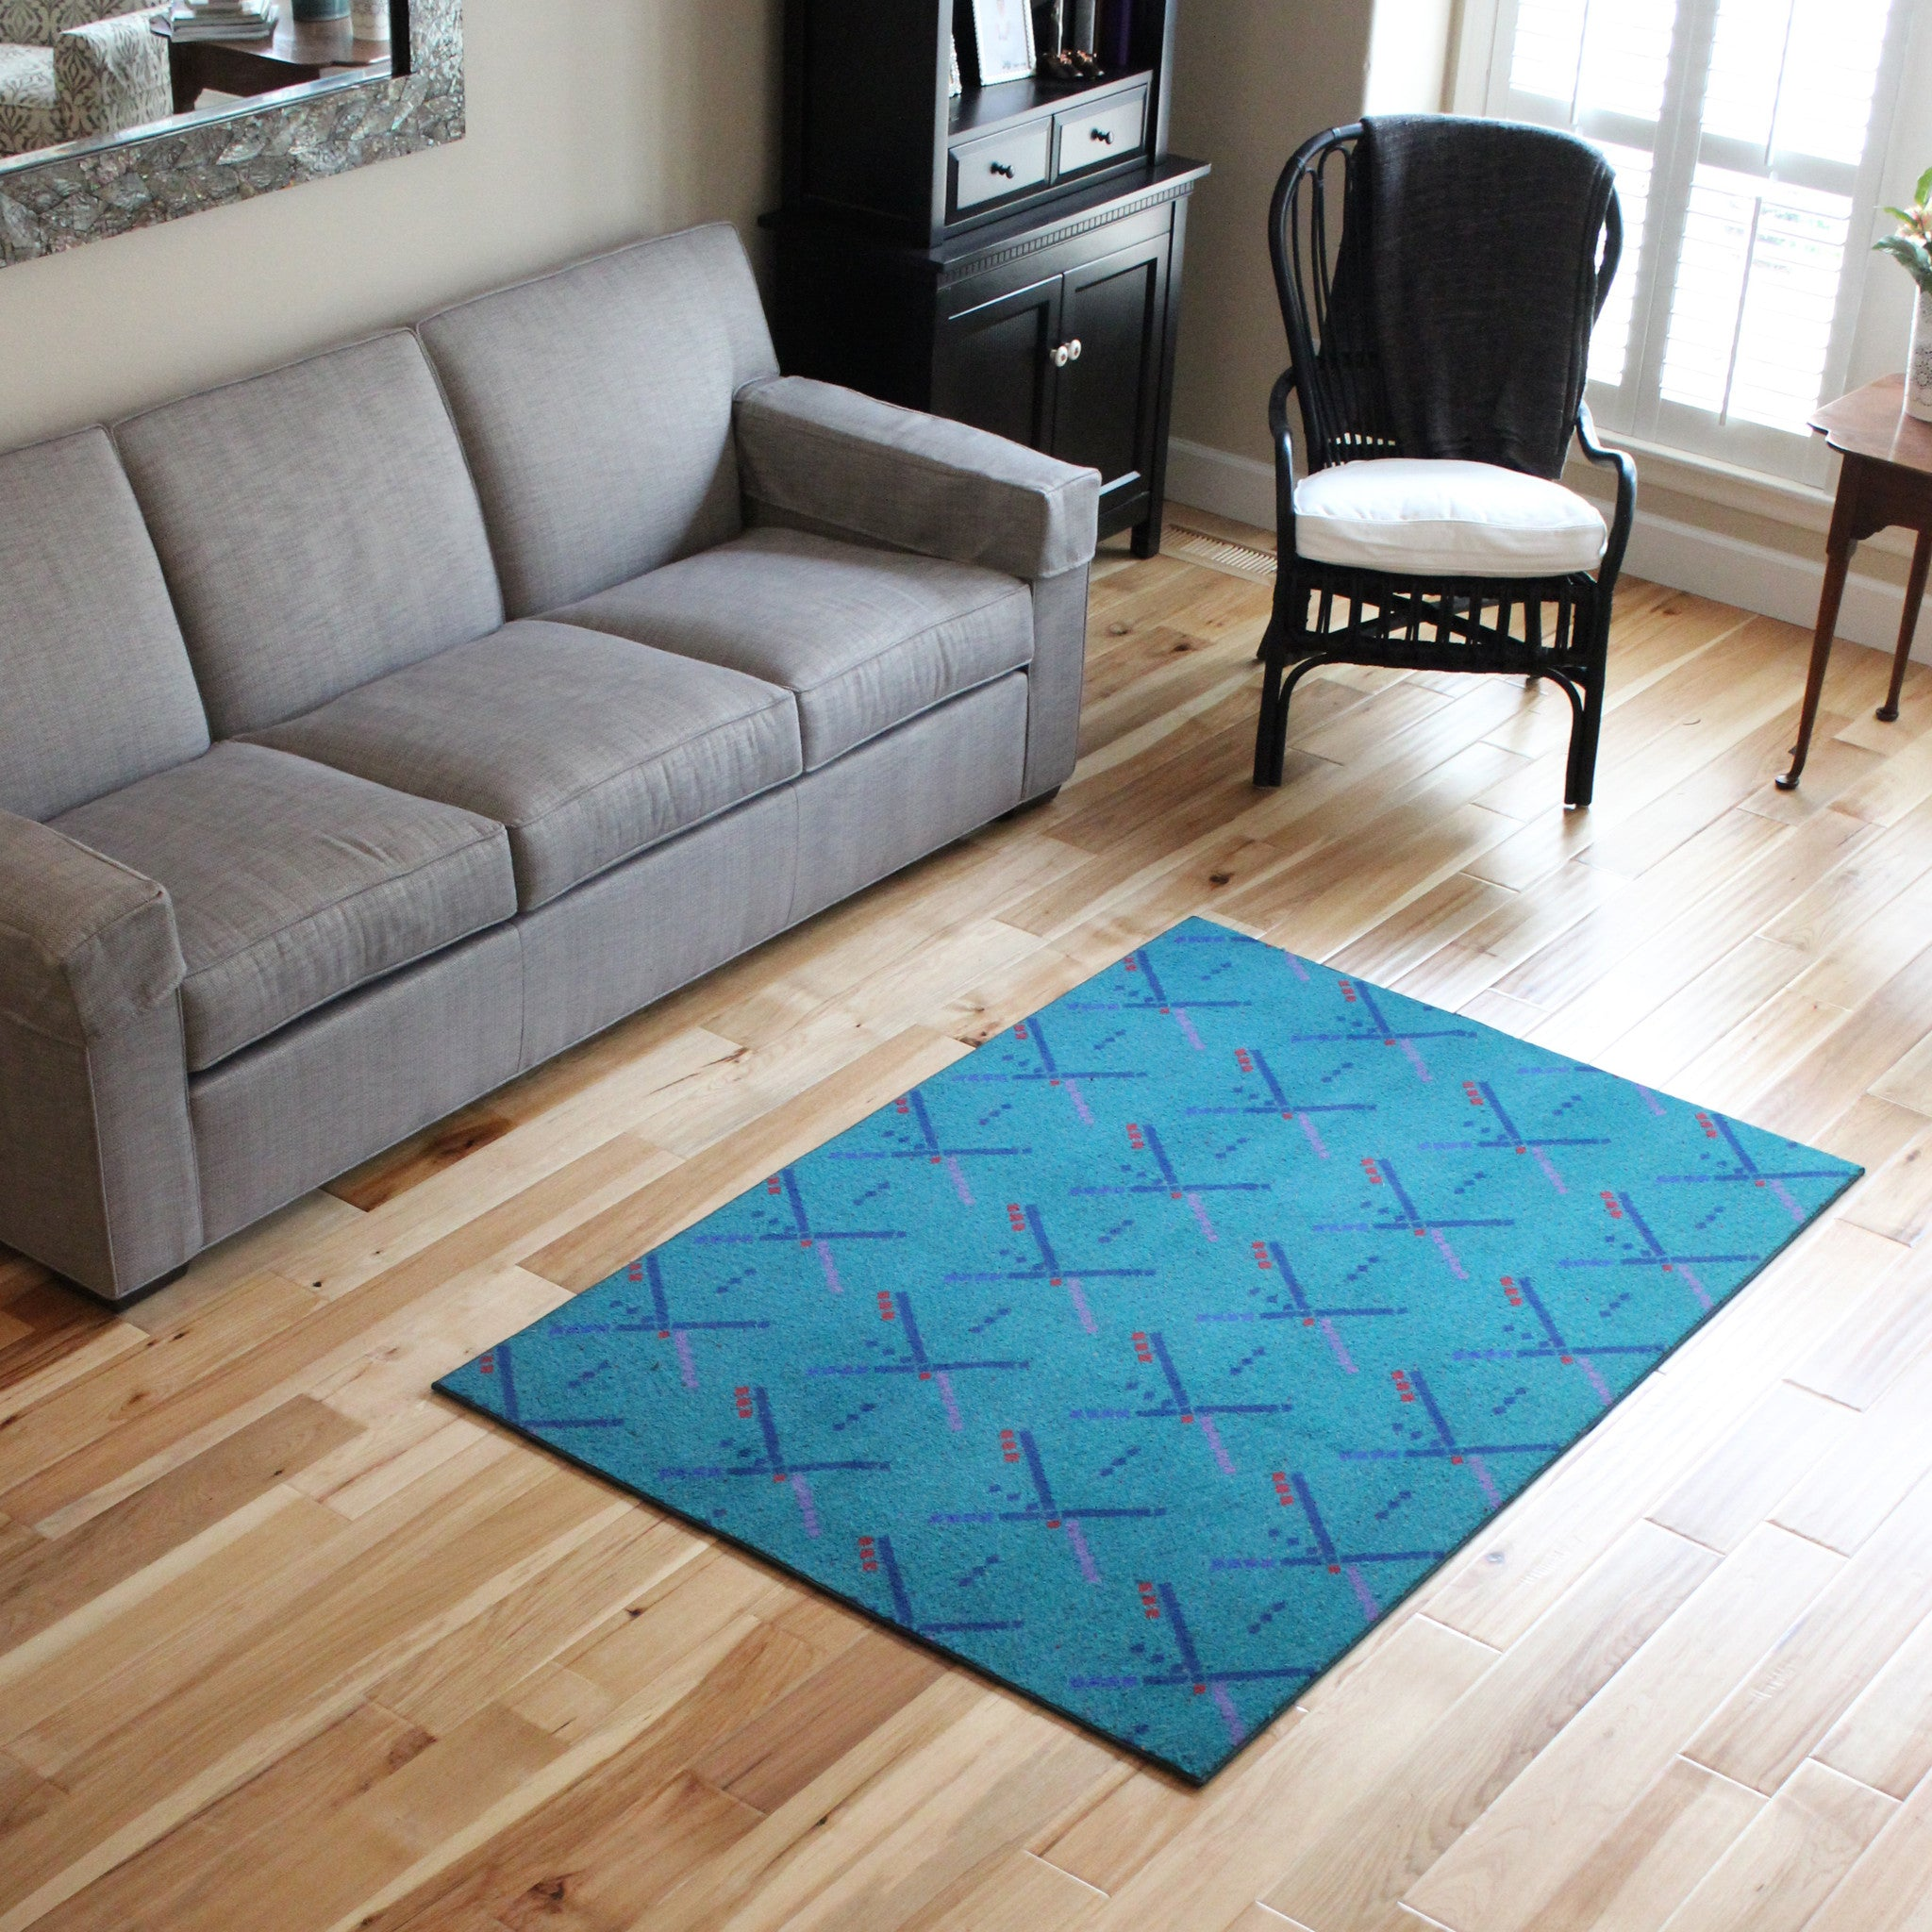 6 By 6 Rug Home Decor